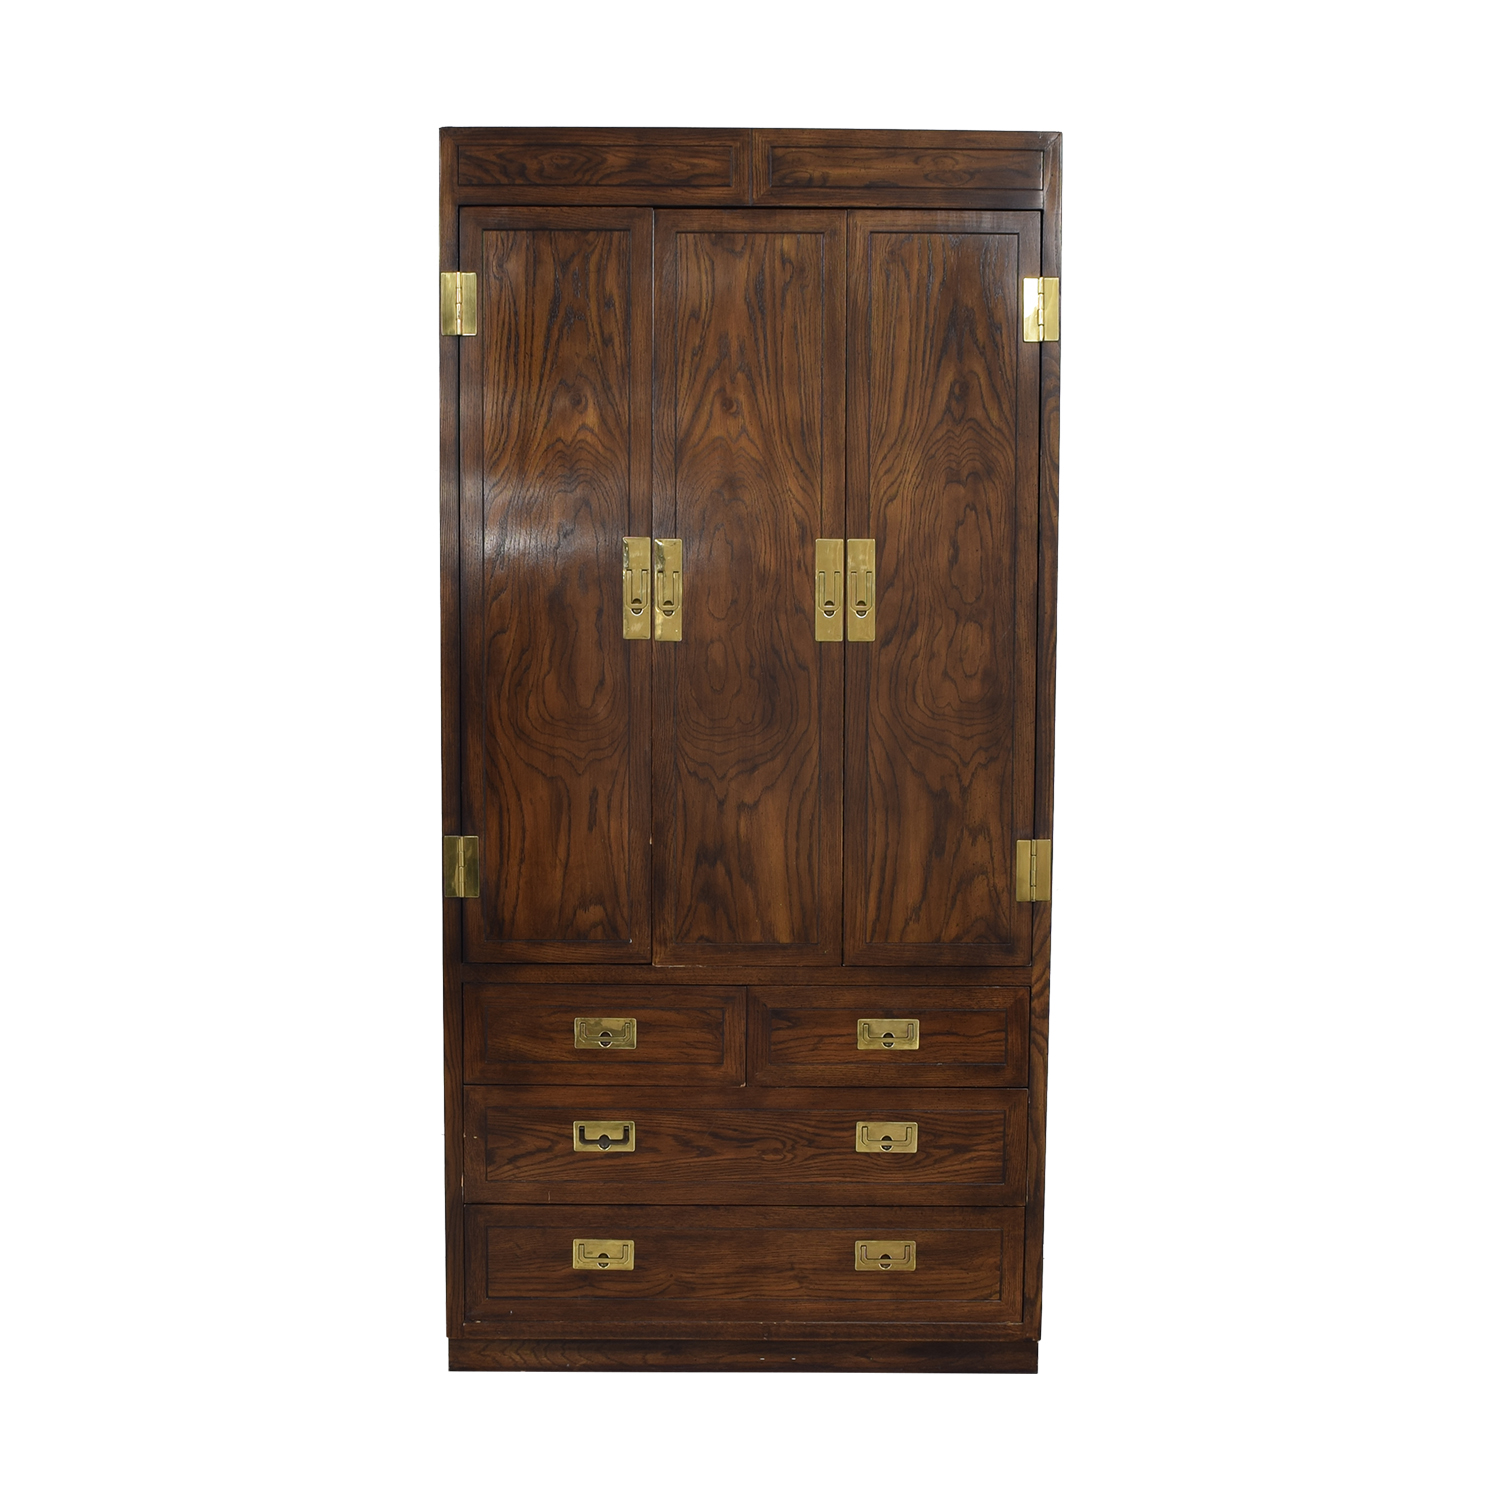 Henredon Furniture Henredon Armoire price